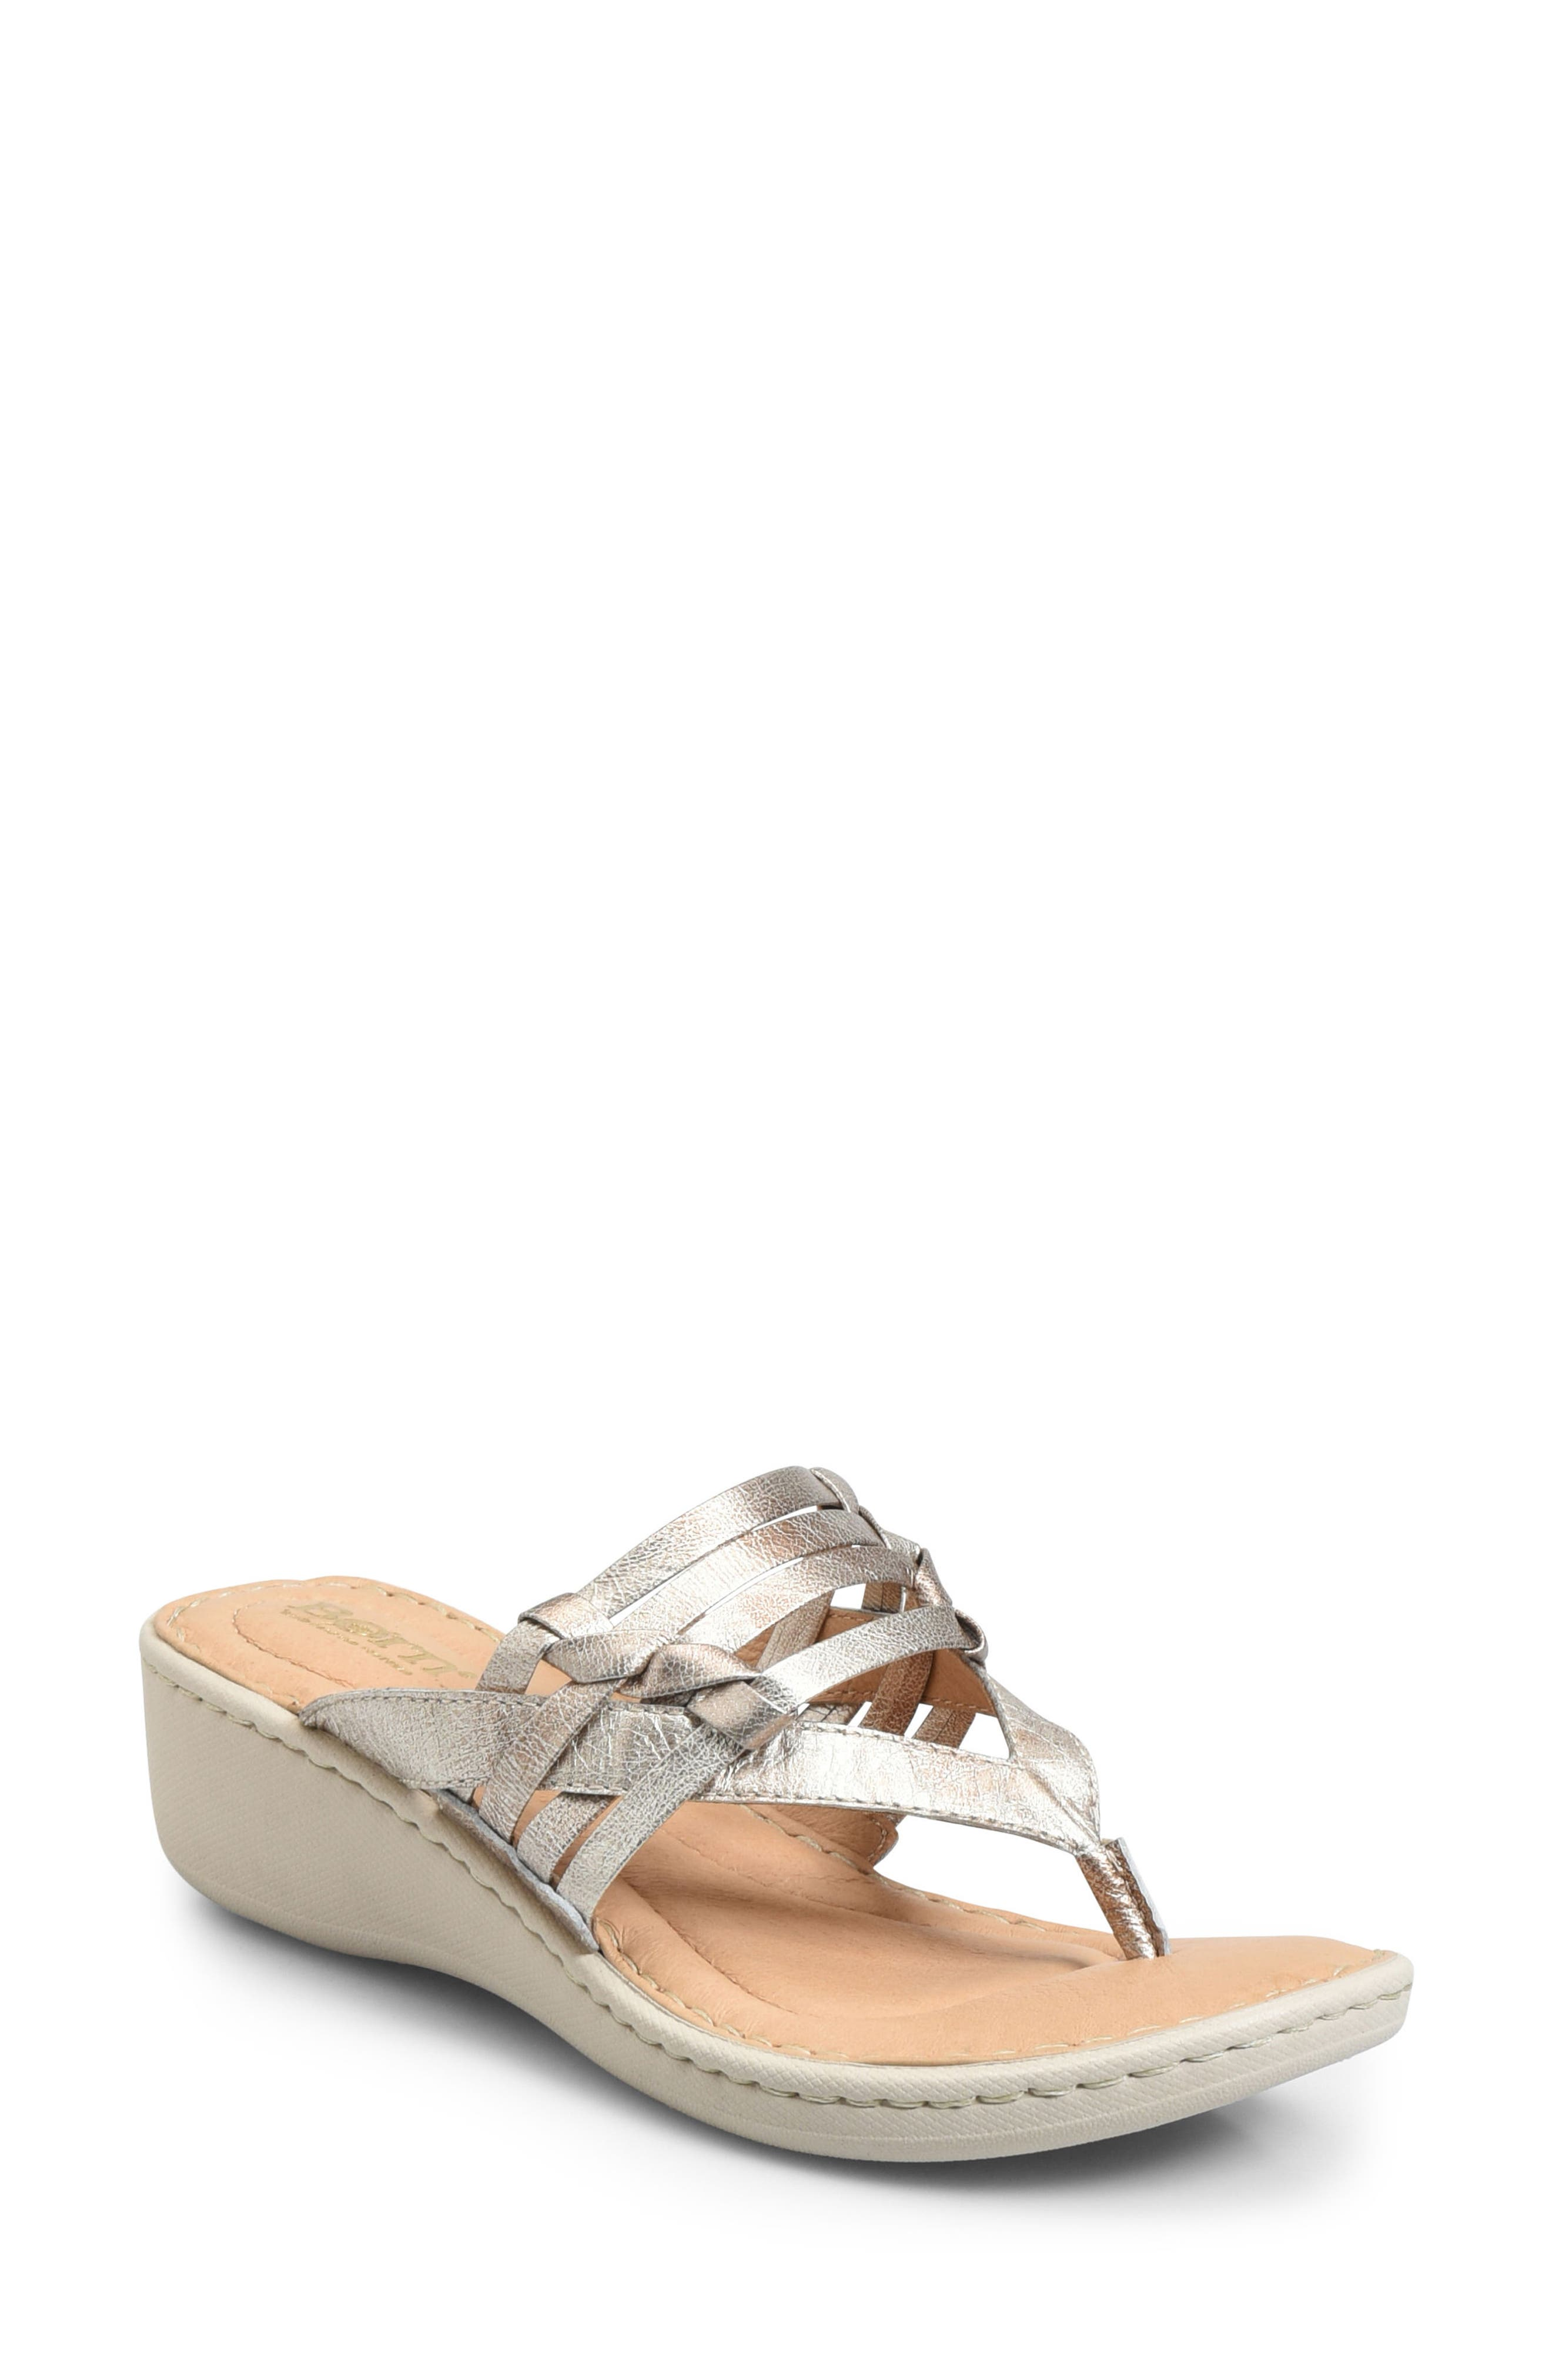 Tansey Wedge Sandal,                             Main thumbnail 2, color,